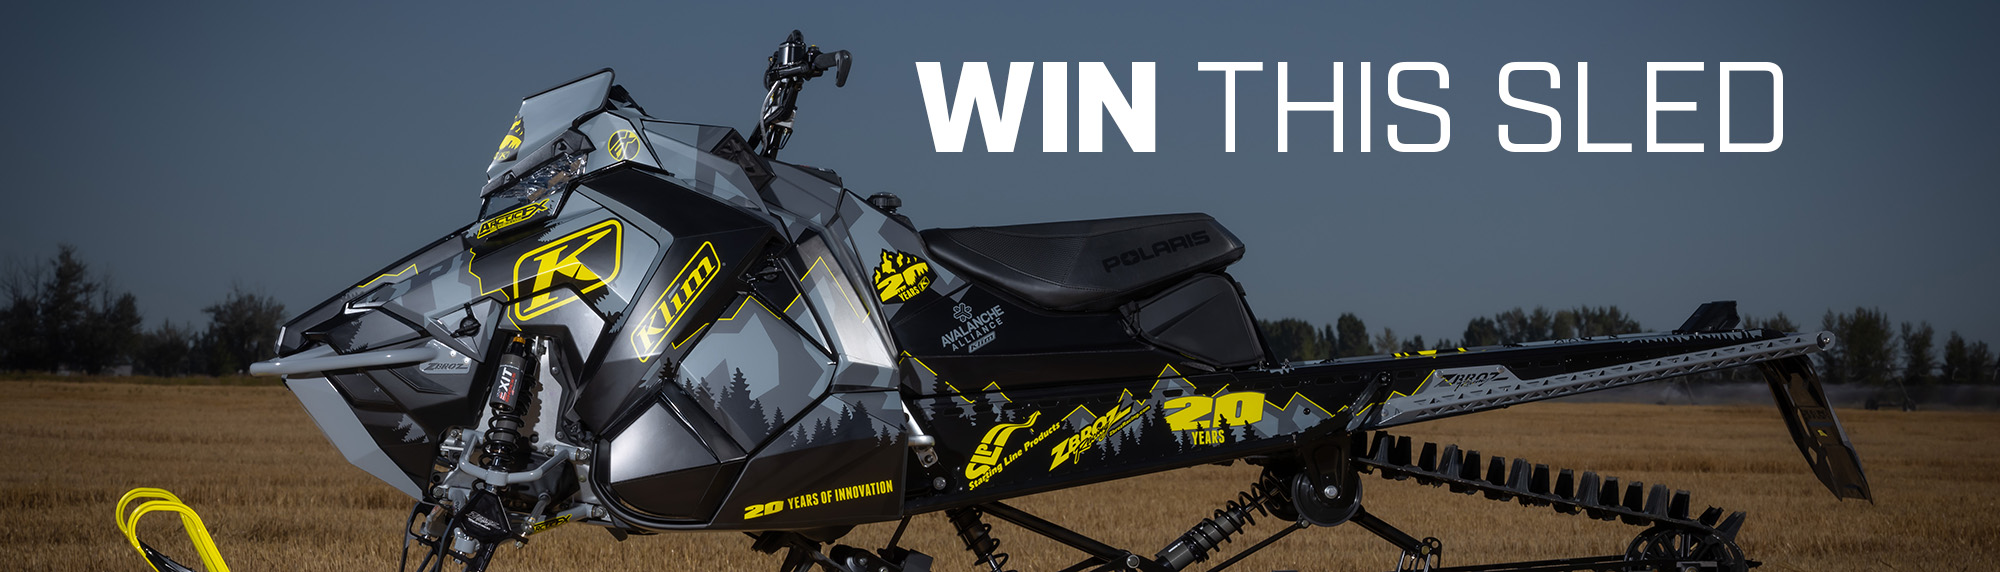 Win this Sled